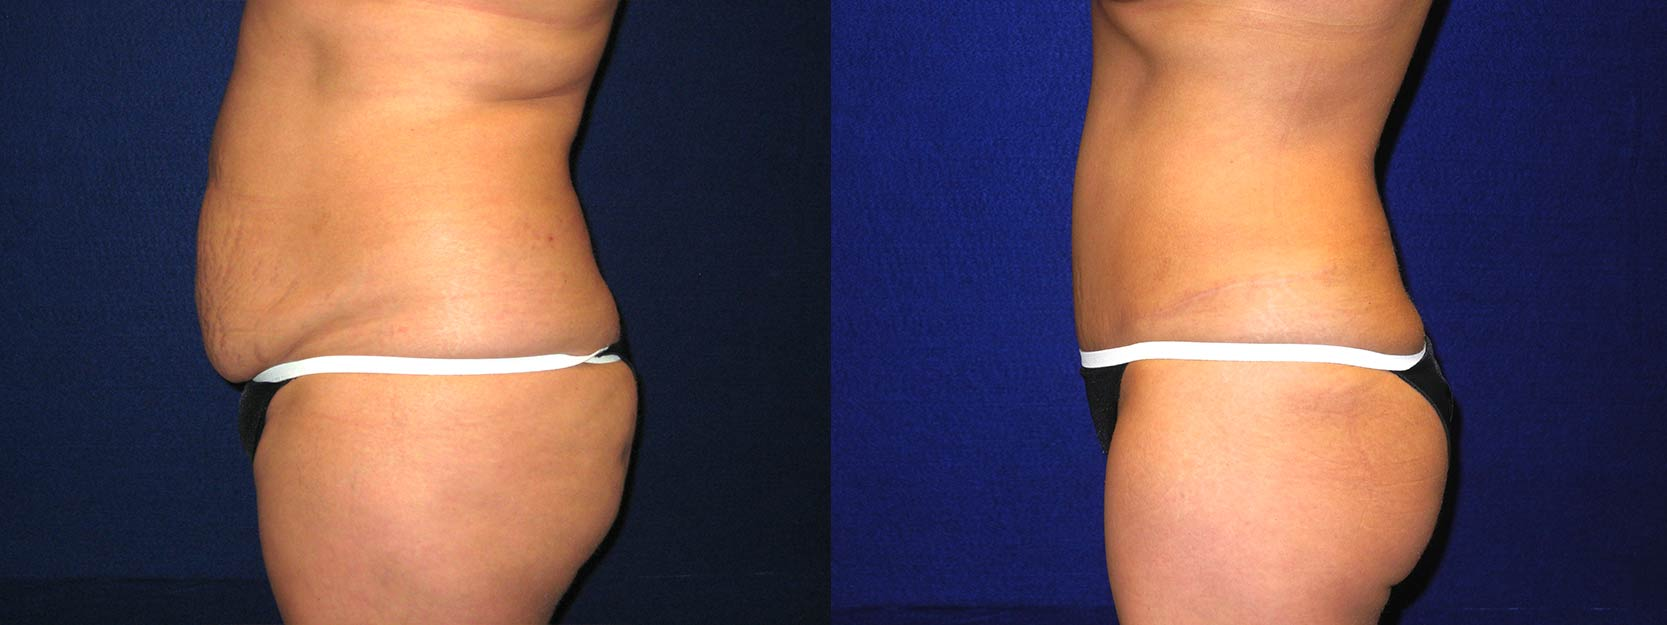 Left Profile View - Tummy Tuck After Pregnancy